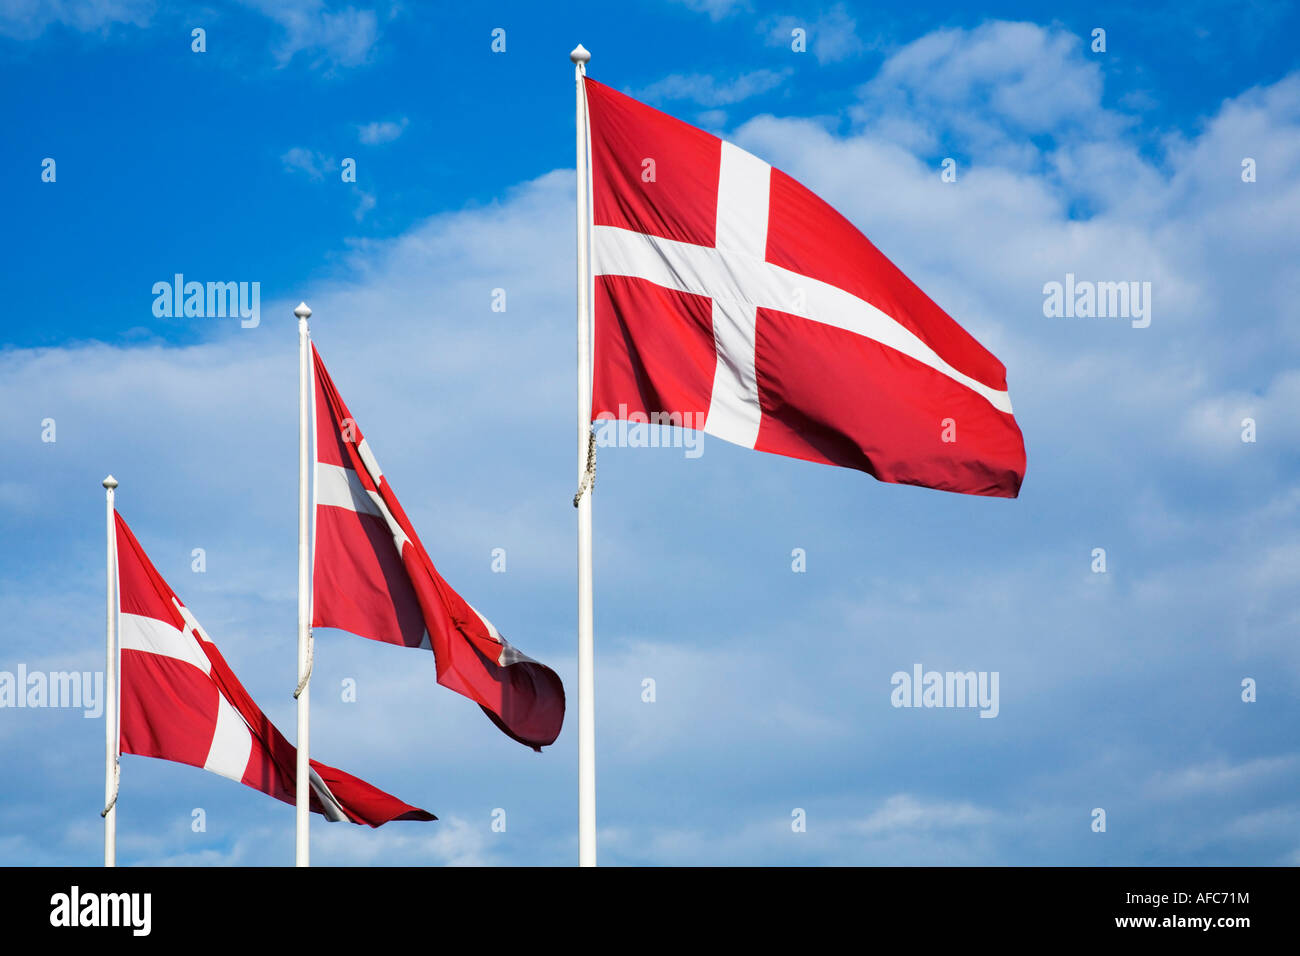 Danish Flags against a blue sky with clouds - Stock Image